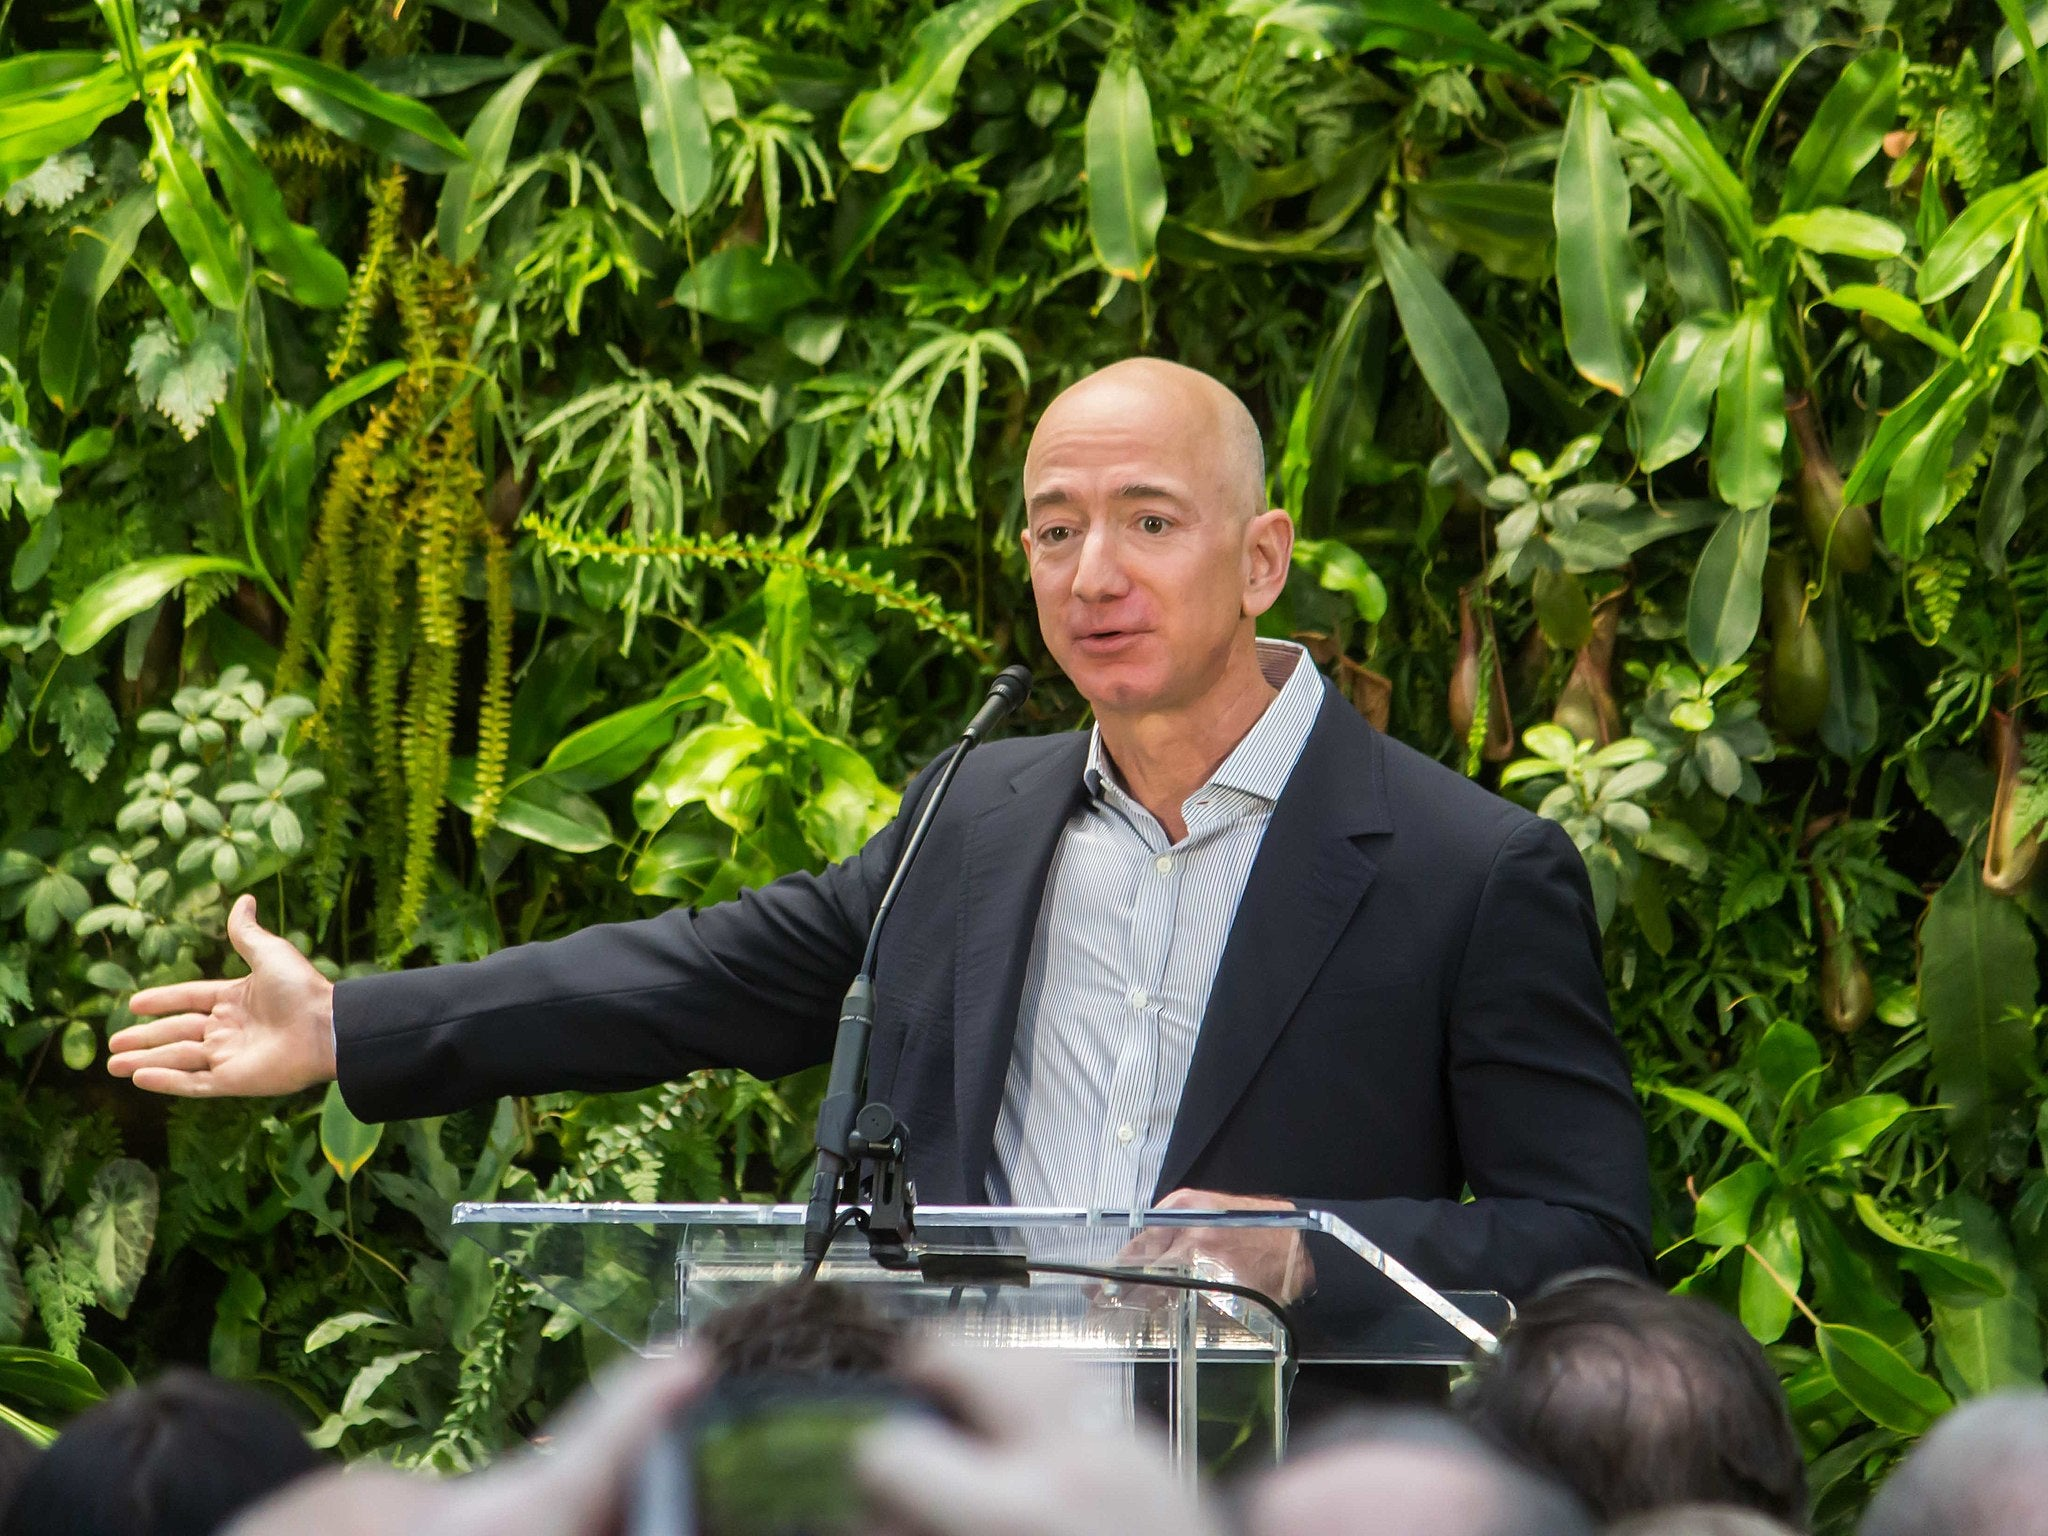 jeff bezos standing in front of a plant wall